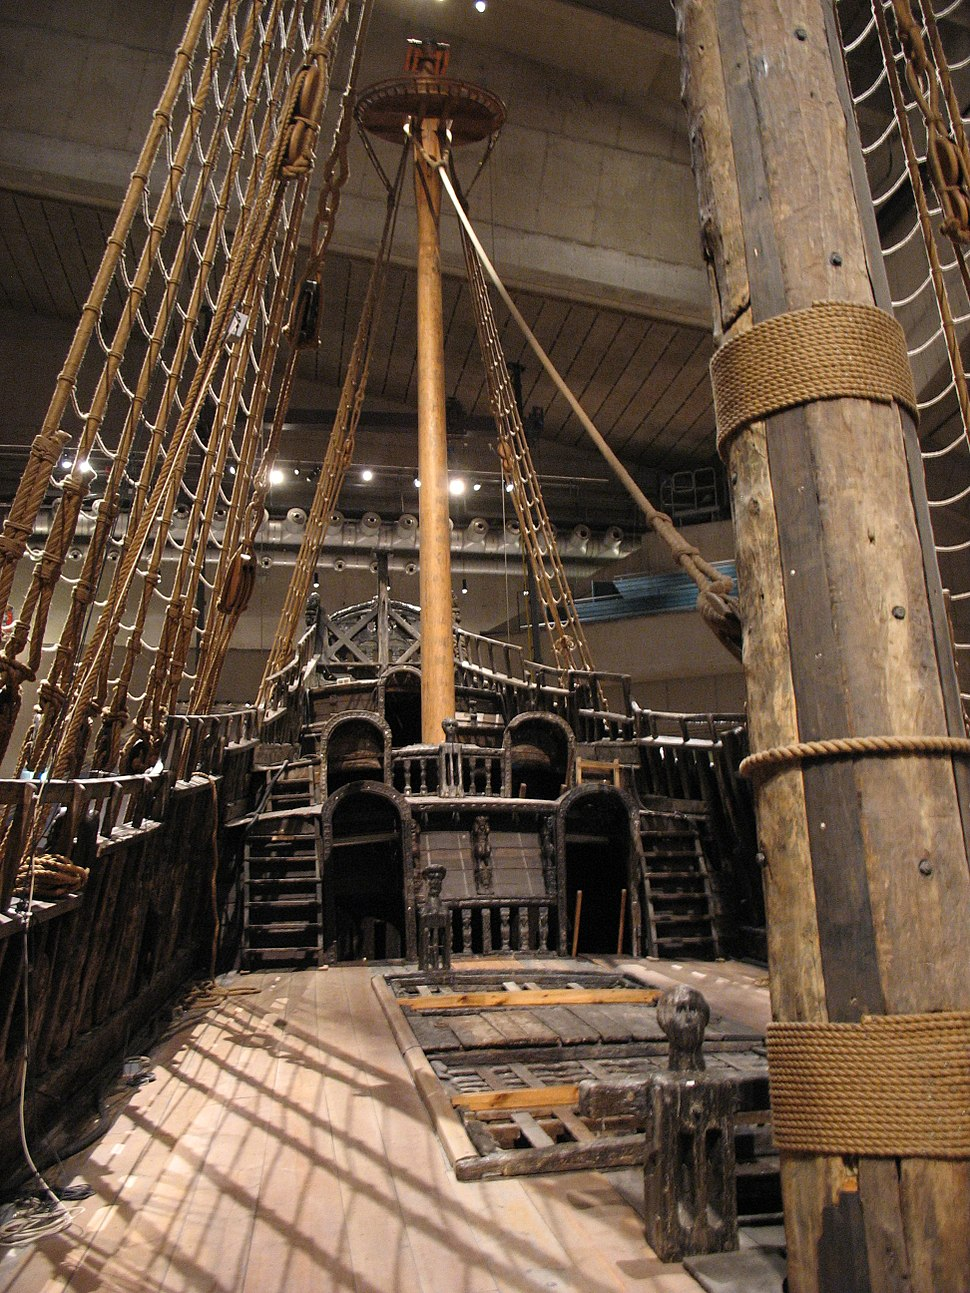 Vasa-weather deck view